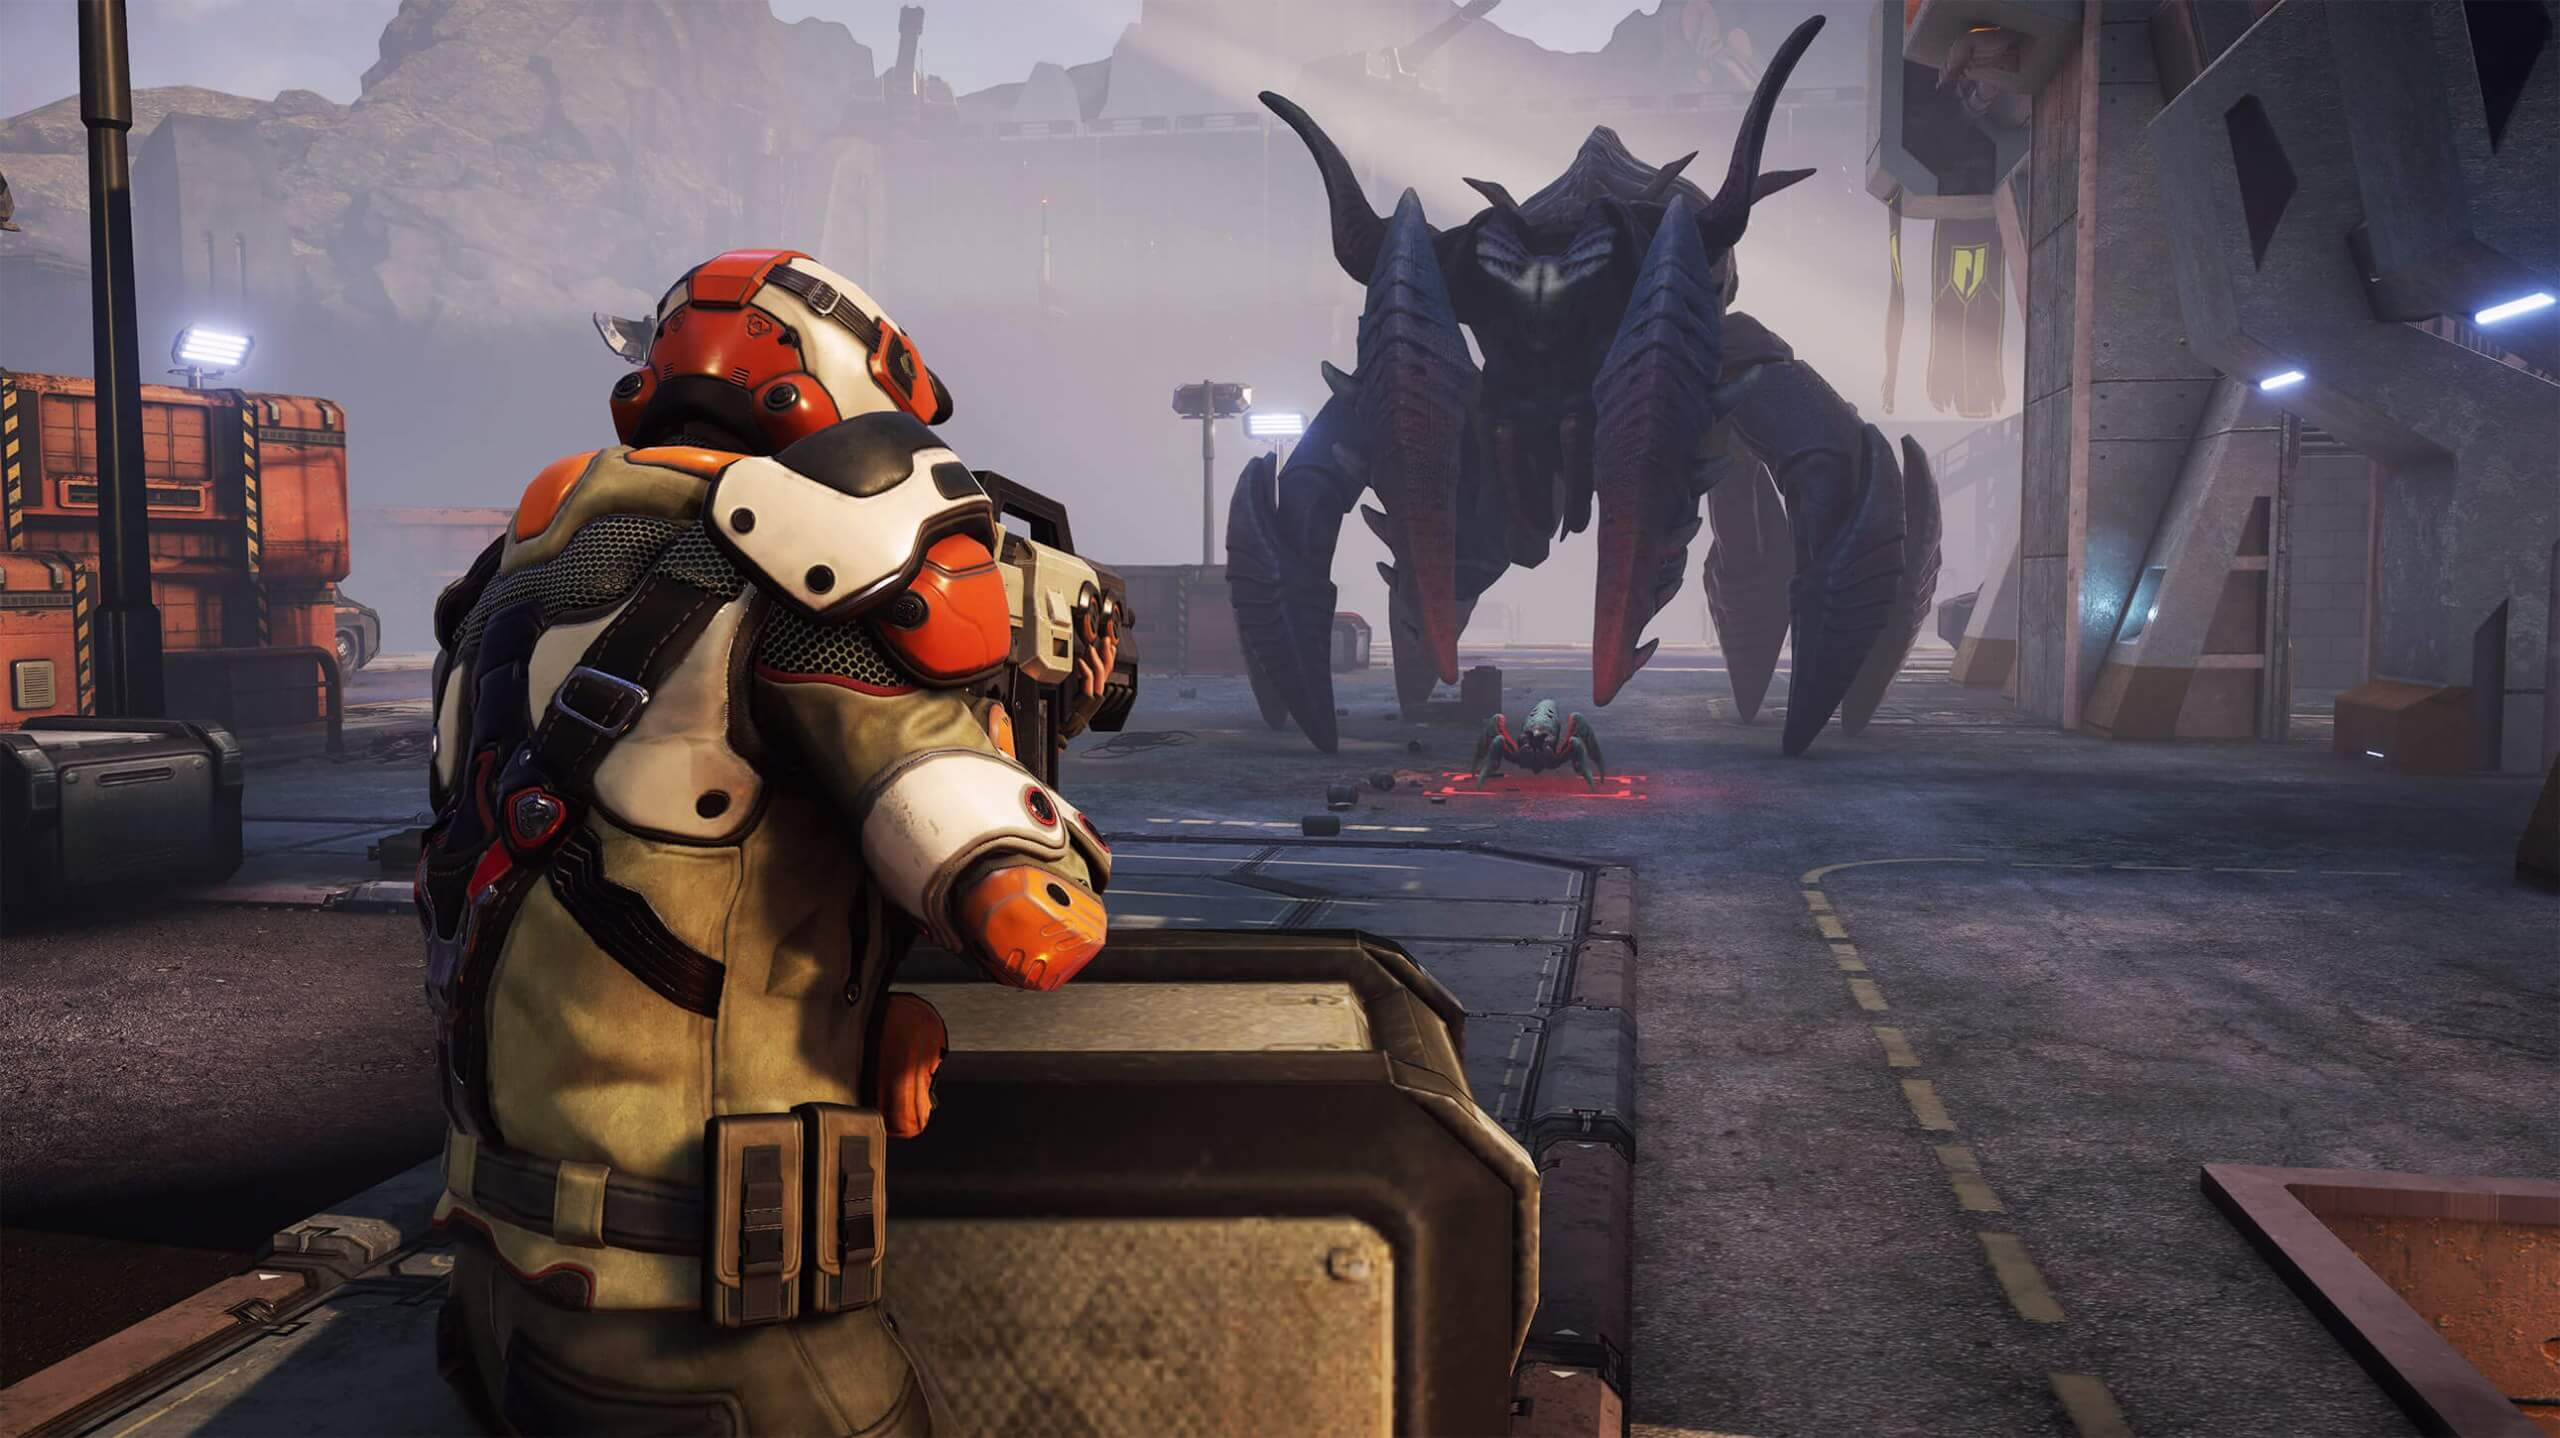 X-COM spiritual successor Phoenix Point will be an Epic Games Store timed exclusive